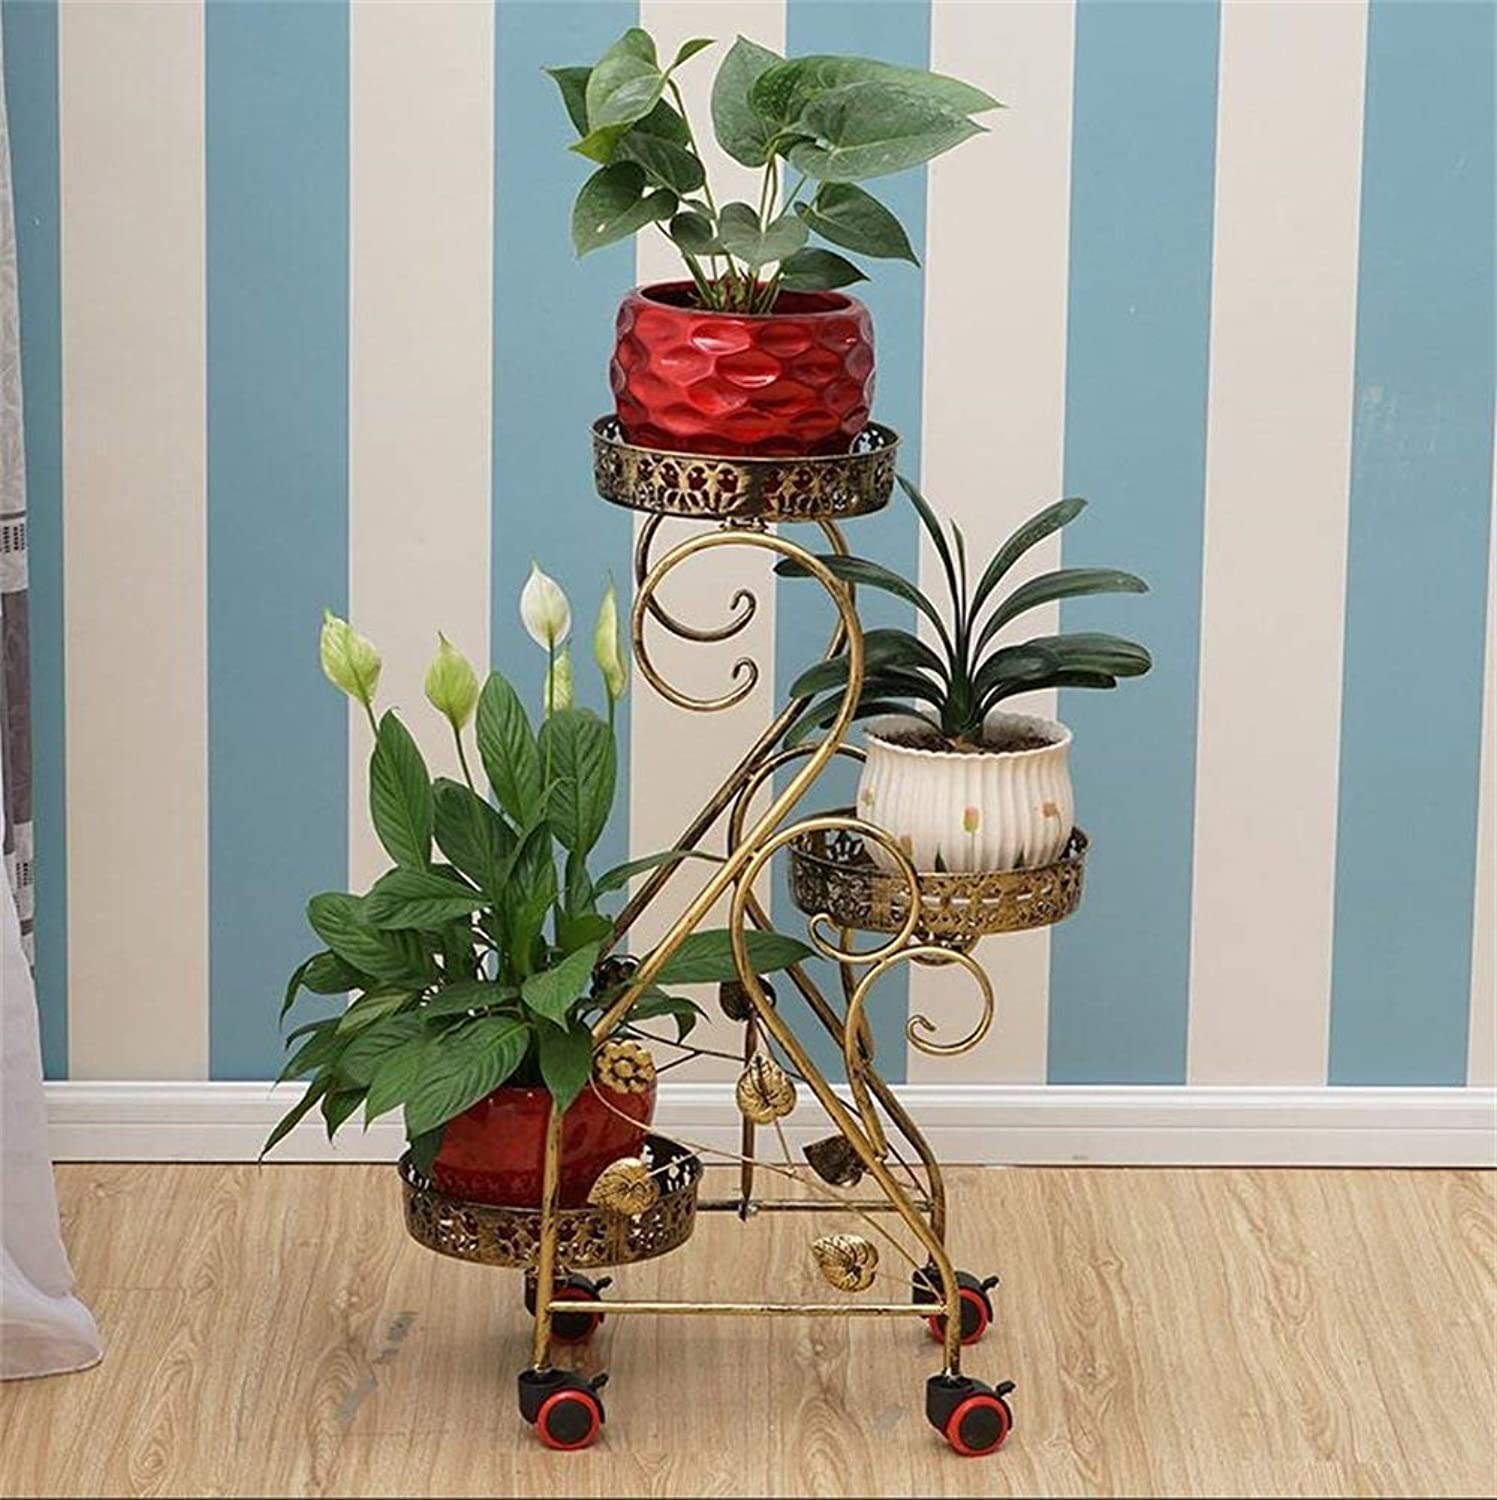 Shiyanghang Outdoor Indoor Display Plant Stand Flower Stand, 3 pots of Metal Flower Pot Display Stand, Removable Floor Stand (color   Bronze)